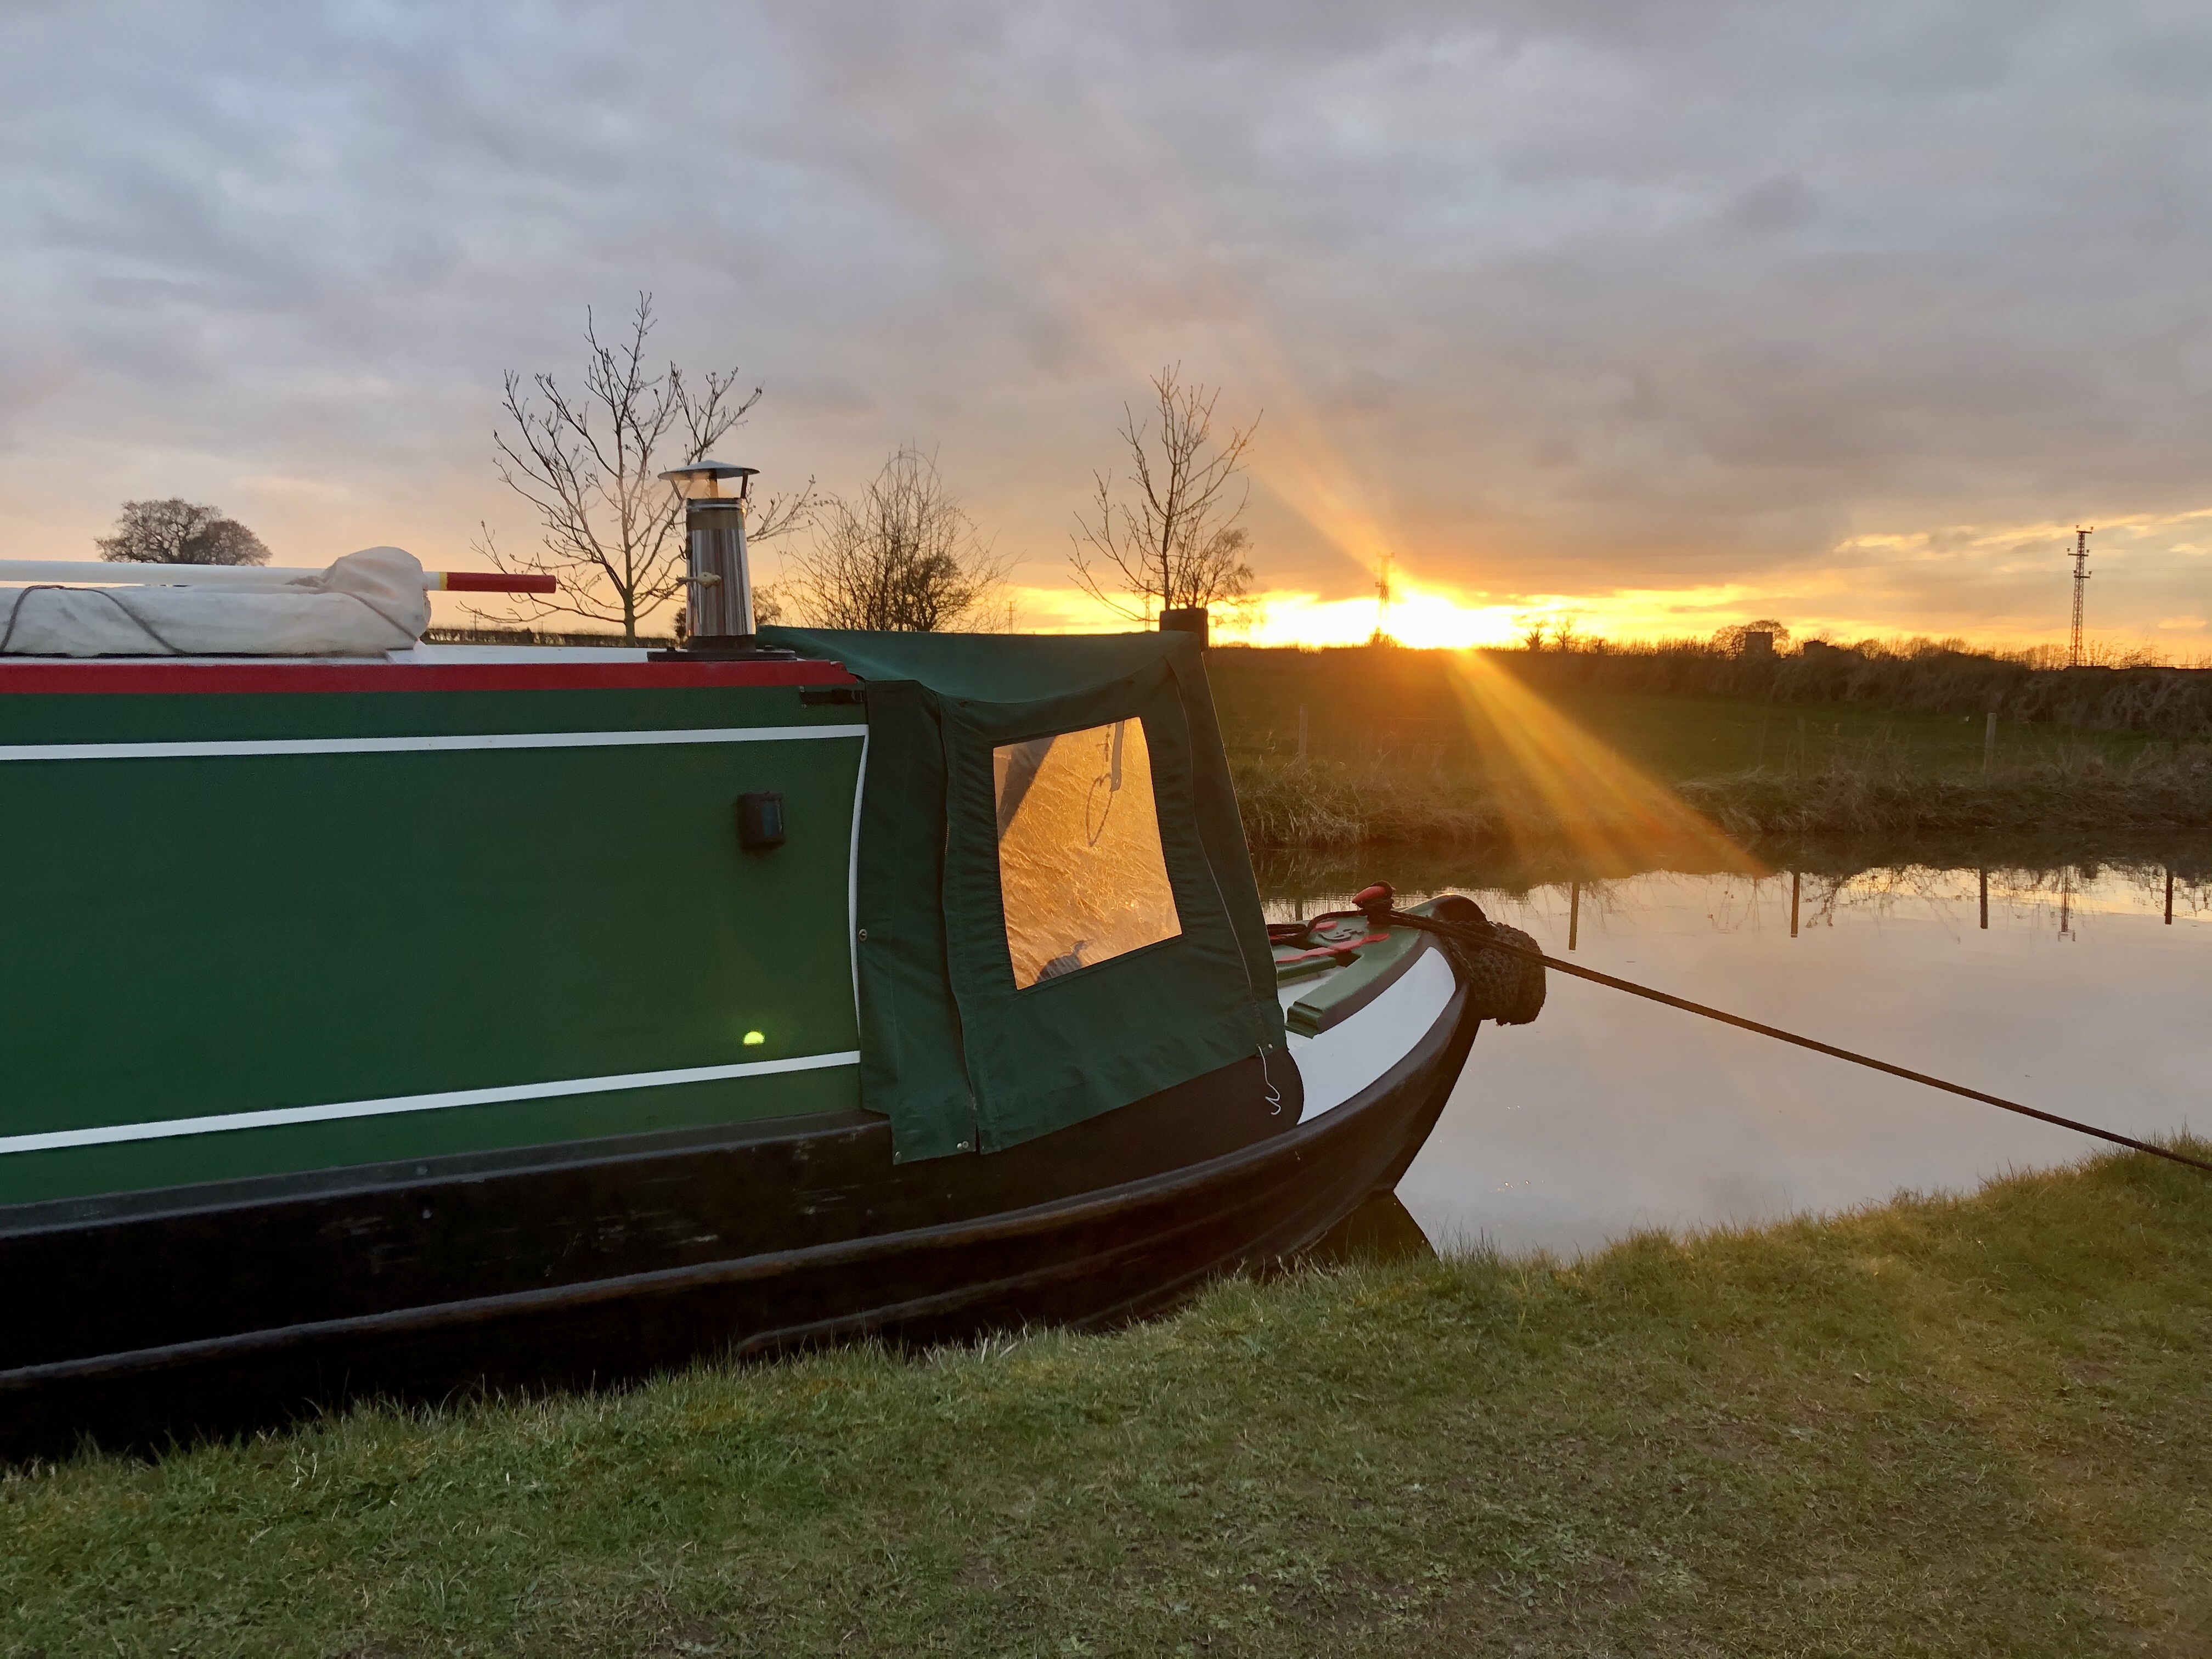 Sunset at Hurleston on the Shropshire Union Canall March 2020